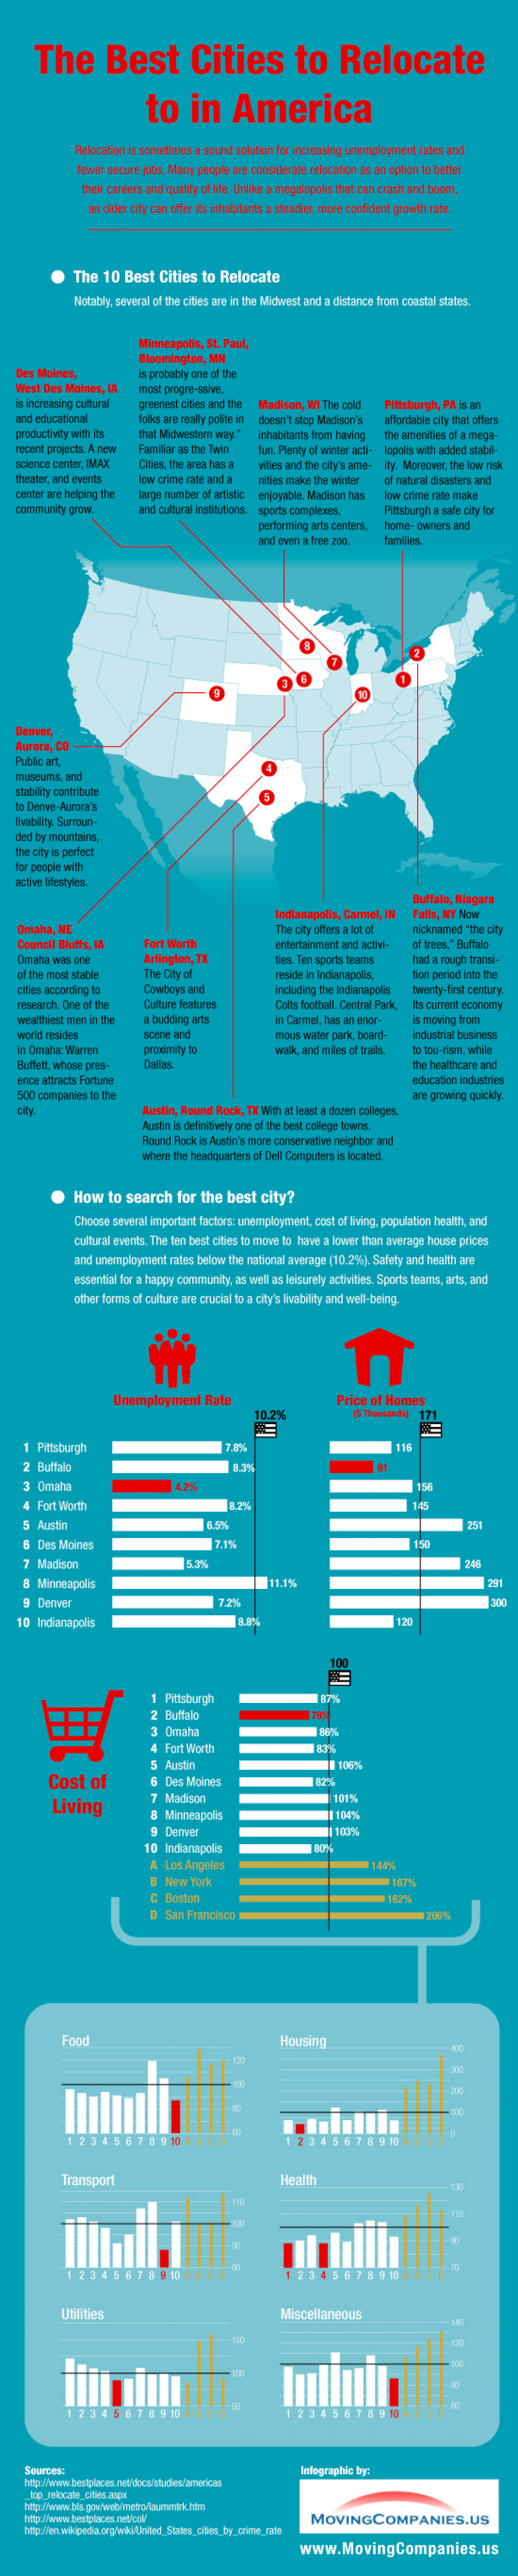 The Best Cities to Relocate to in America Infographic